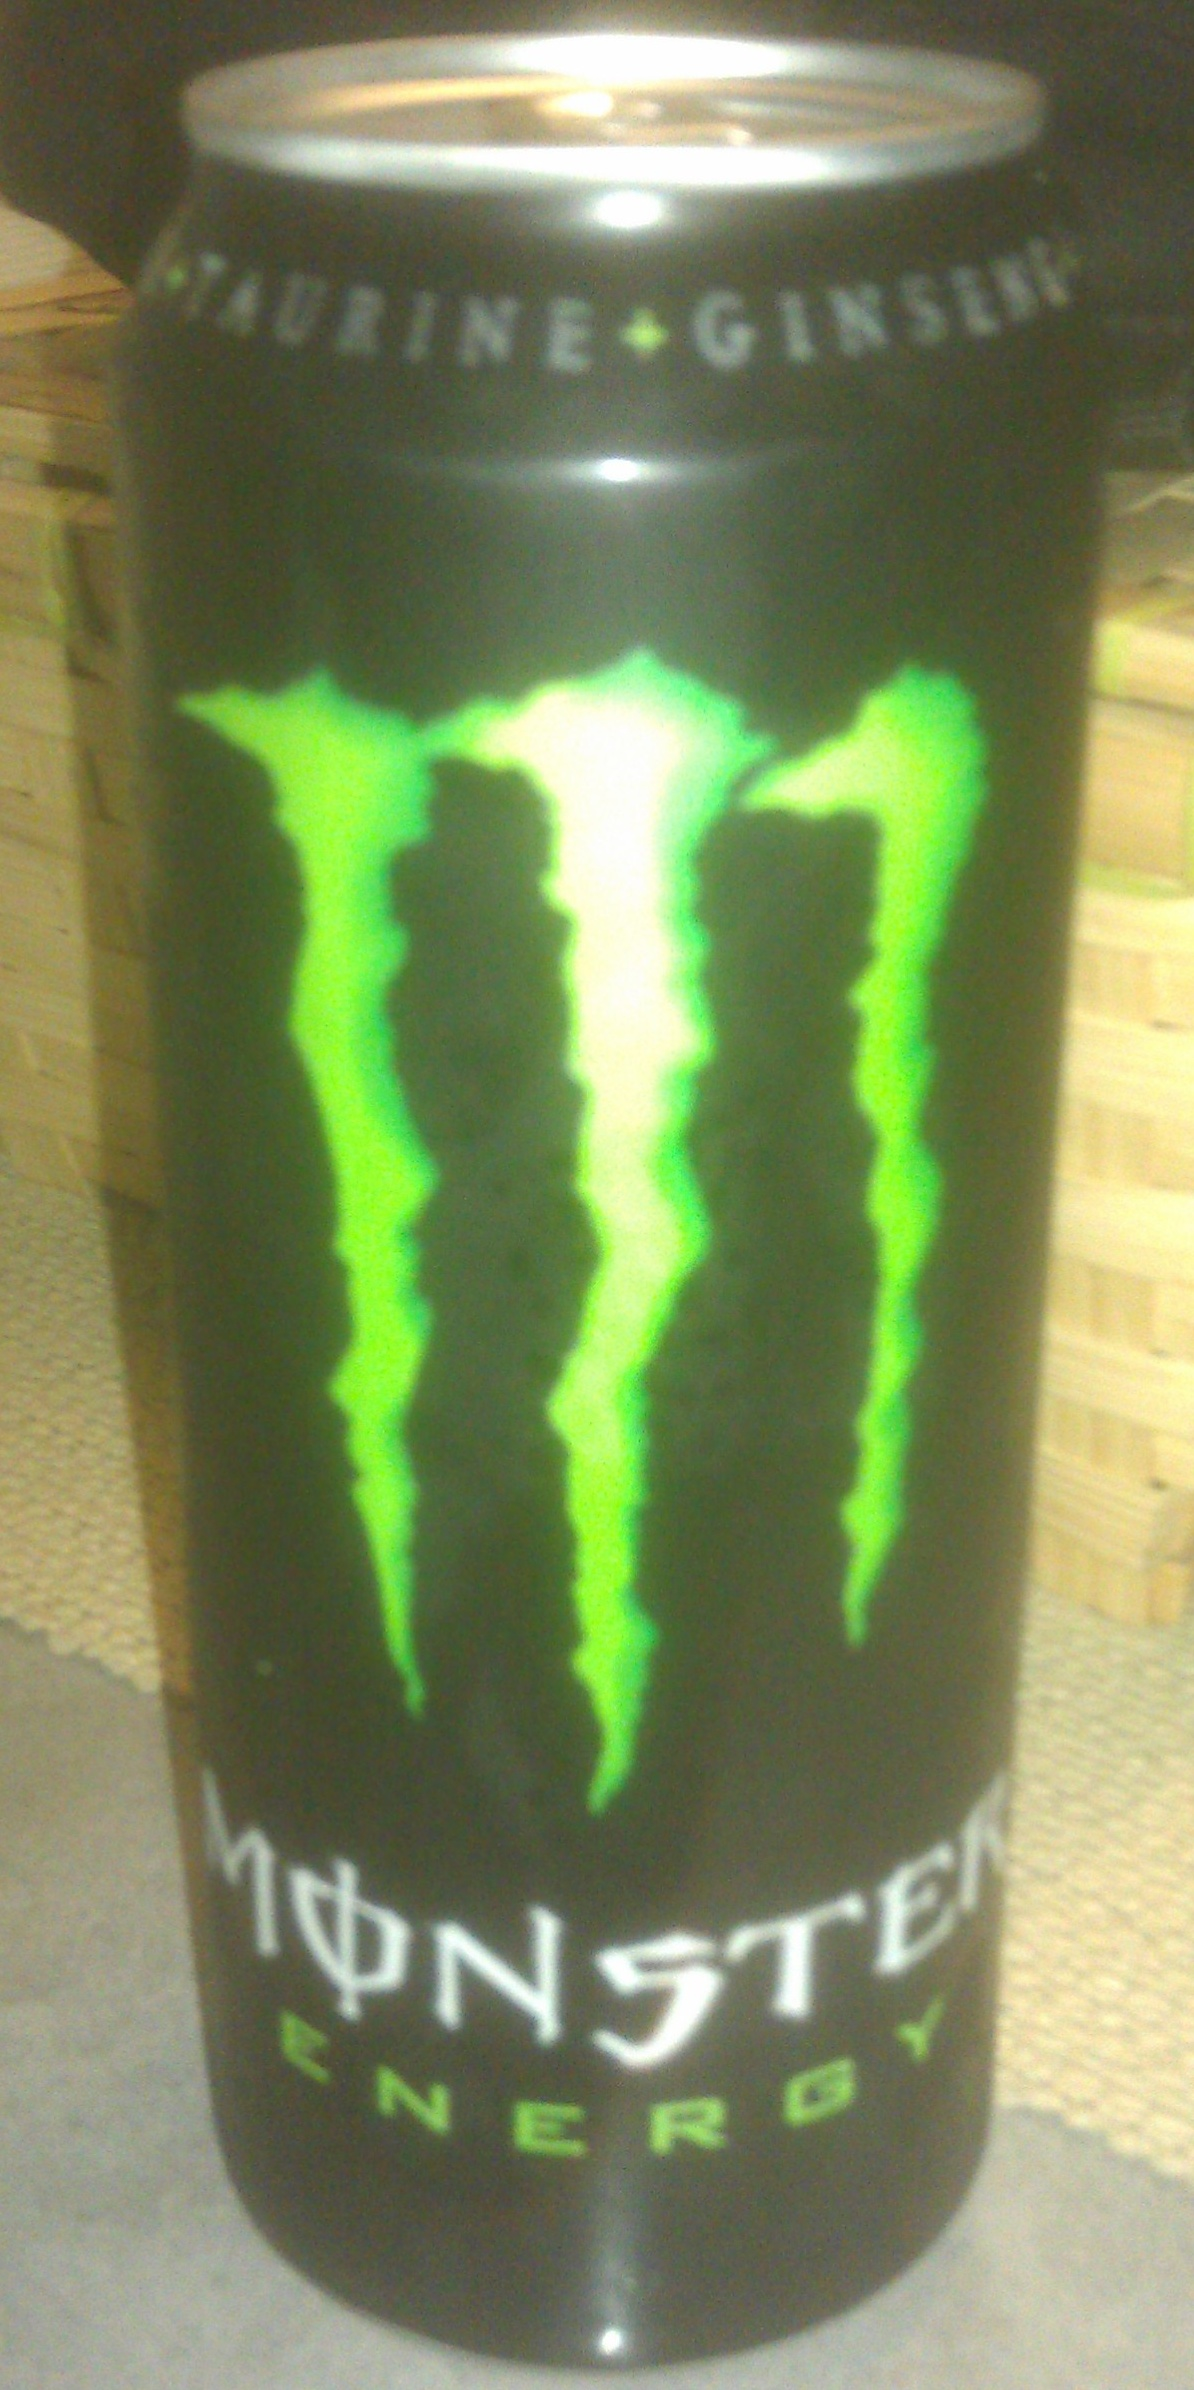 BTE 50CL MONSTER ENERGY - Product - fr